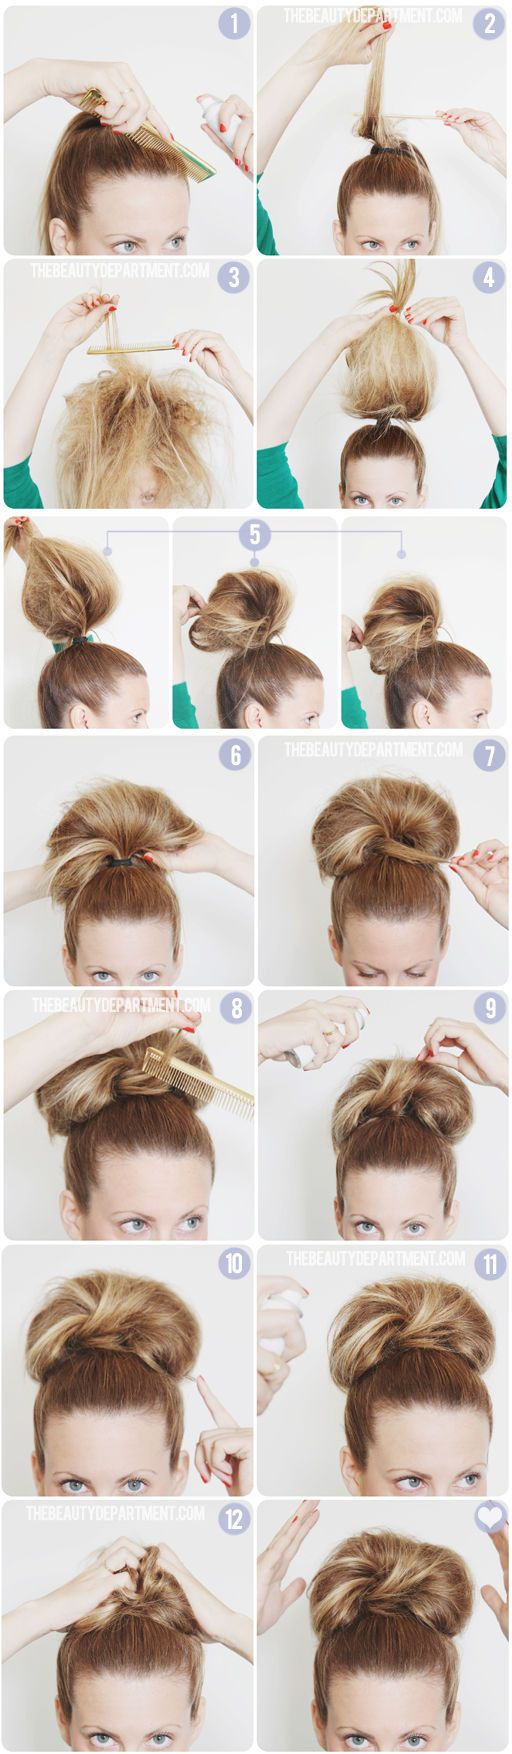 DIY Stylish Updo Tutorial